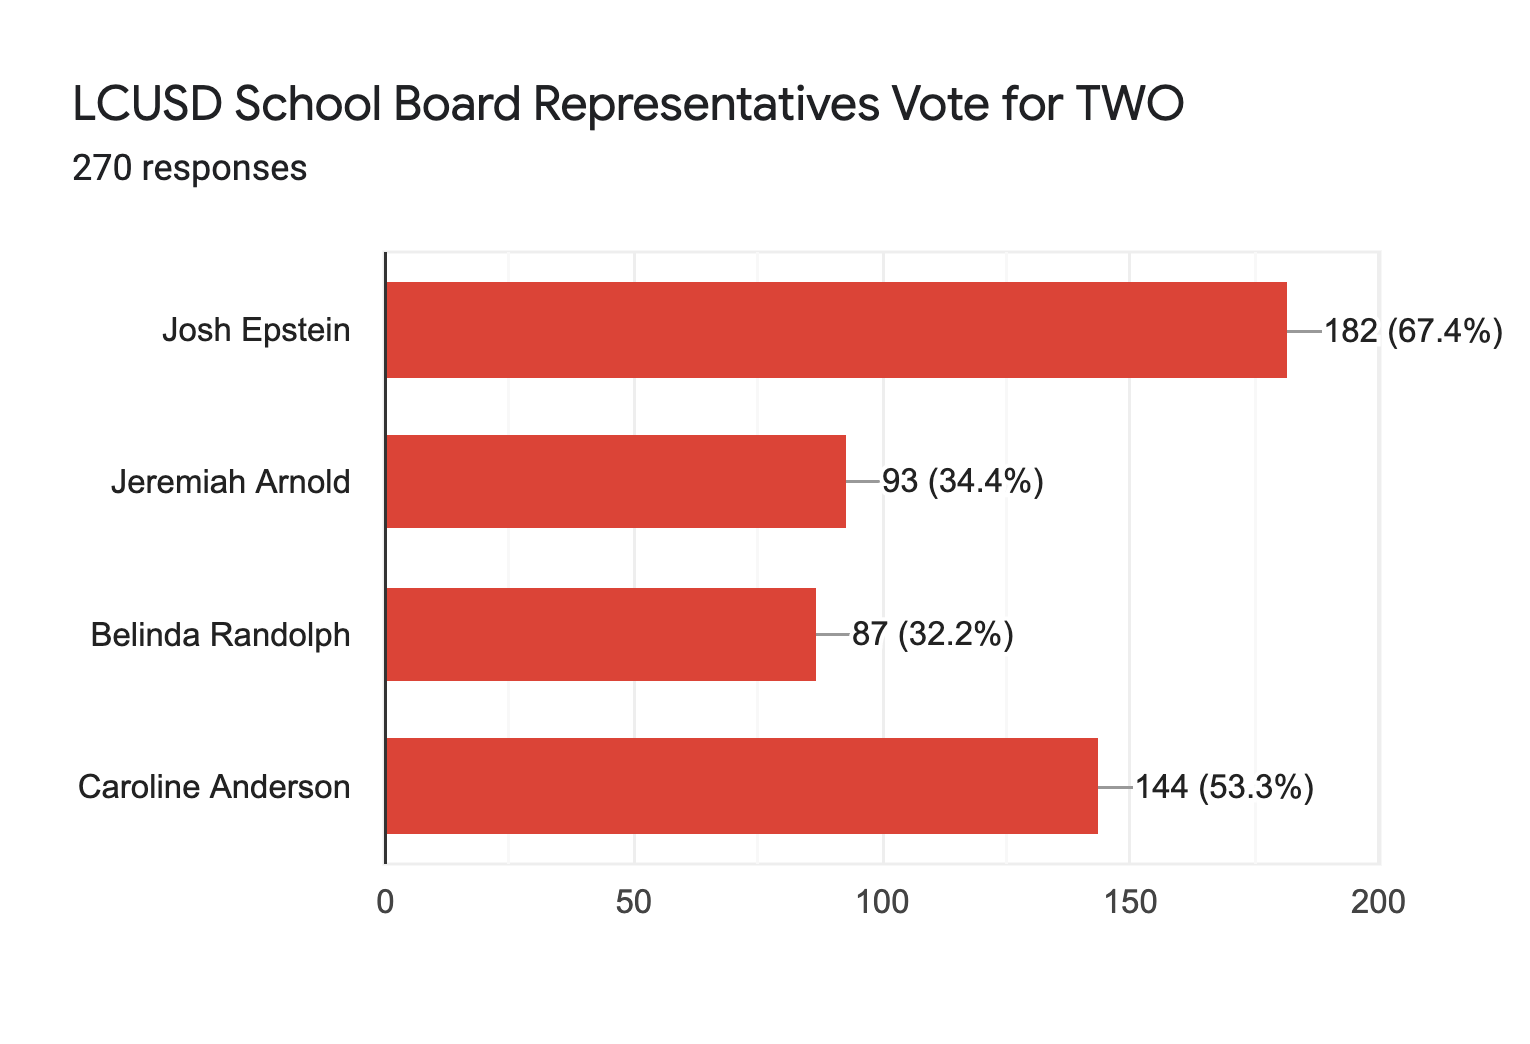 Forms response chart. Question title: LCUSD School Board Representatives Vote for TWO. Number of responses: 270 responses.